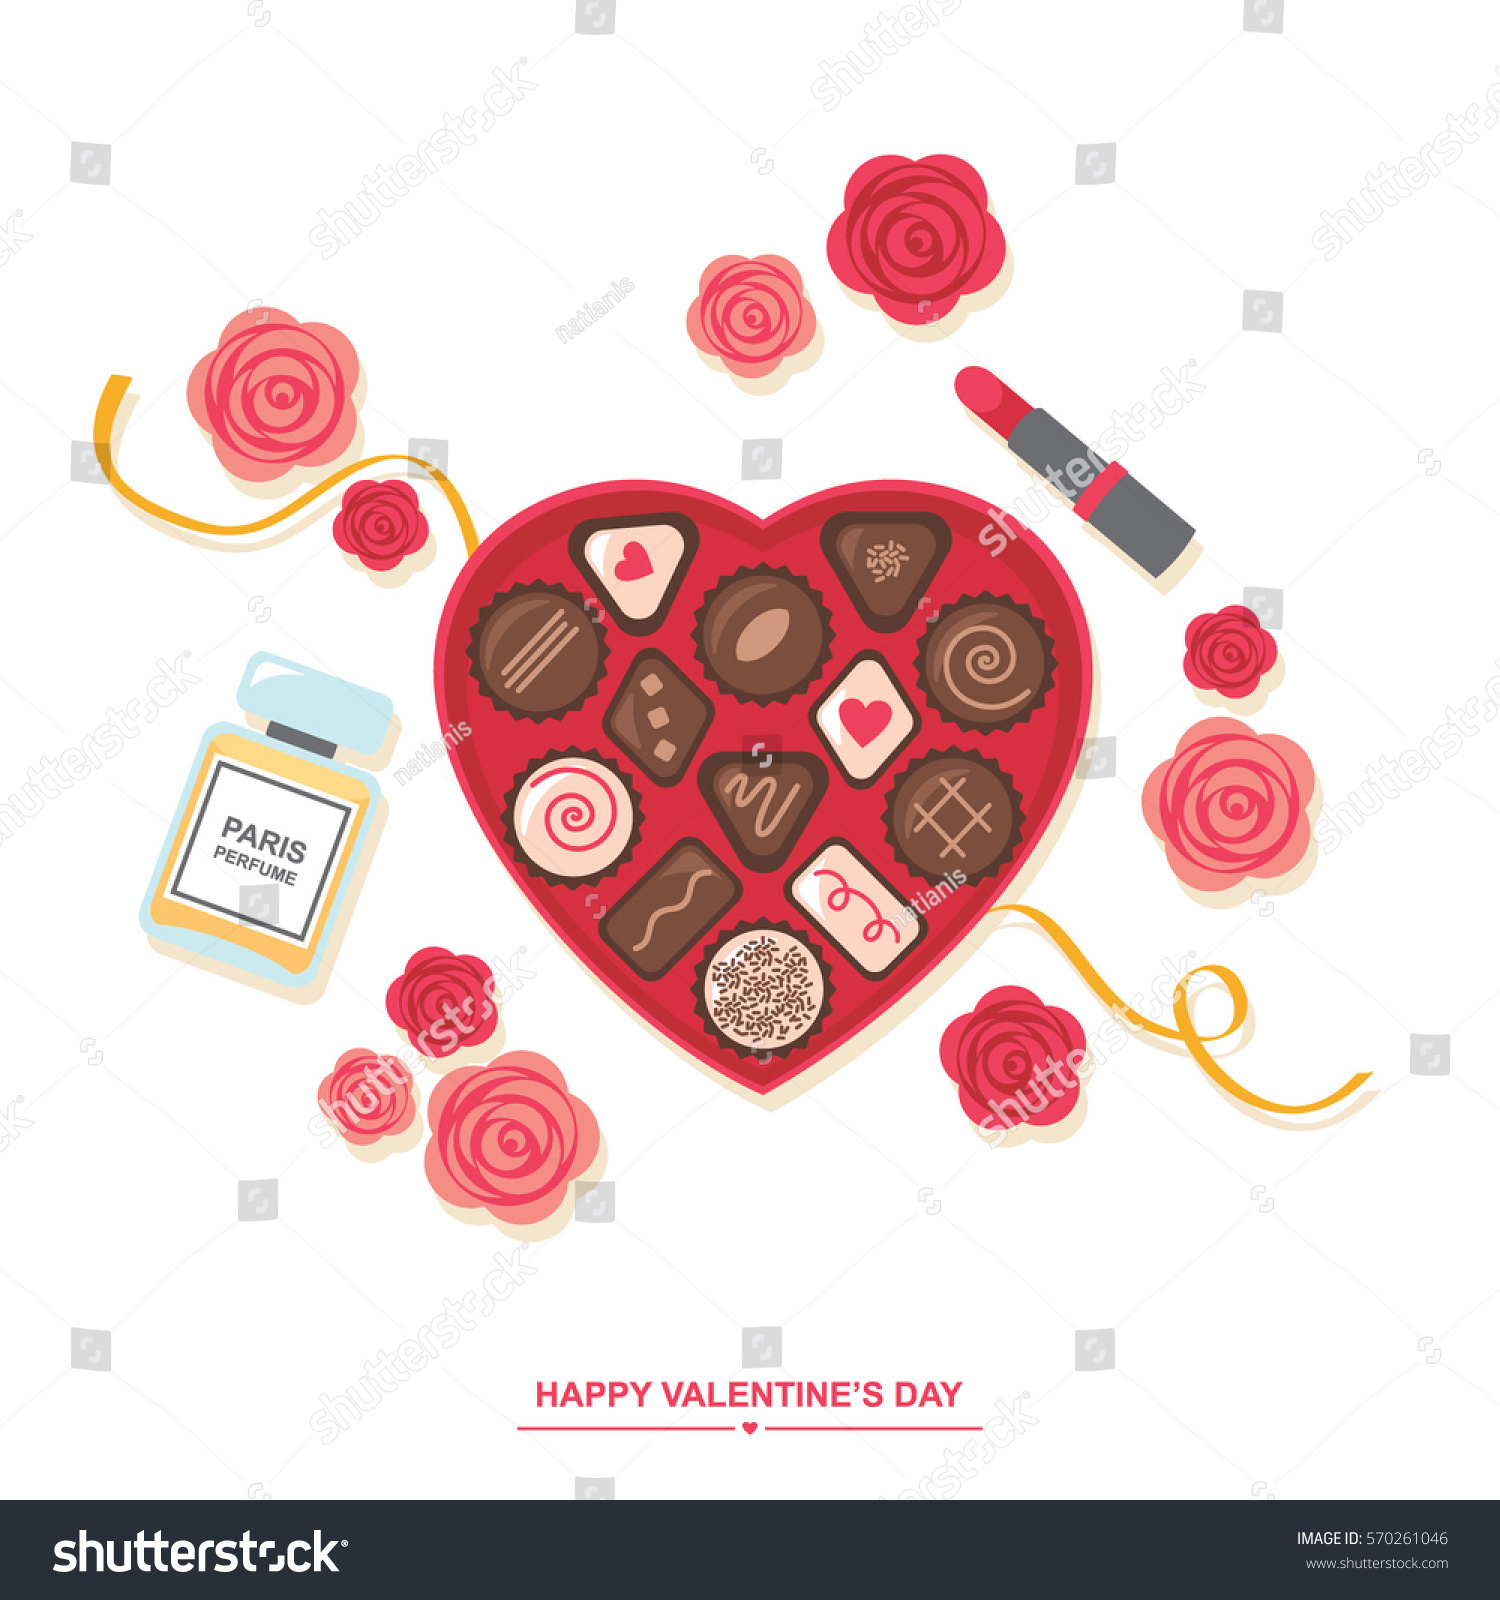 Valentines Day Romantic Gift Chocolates Box Stock Vector Royalty